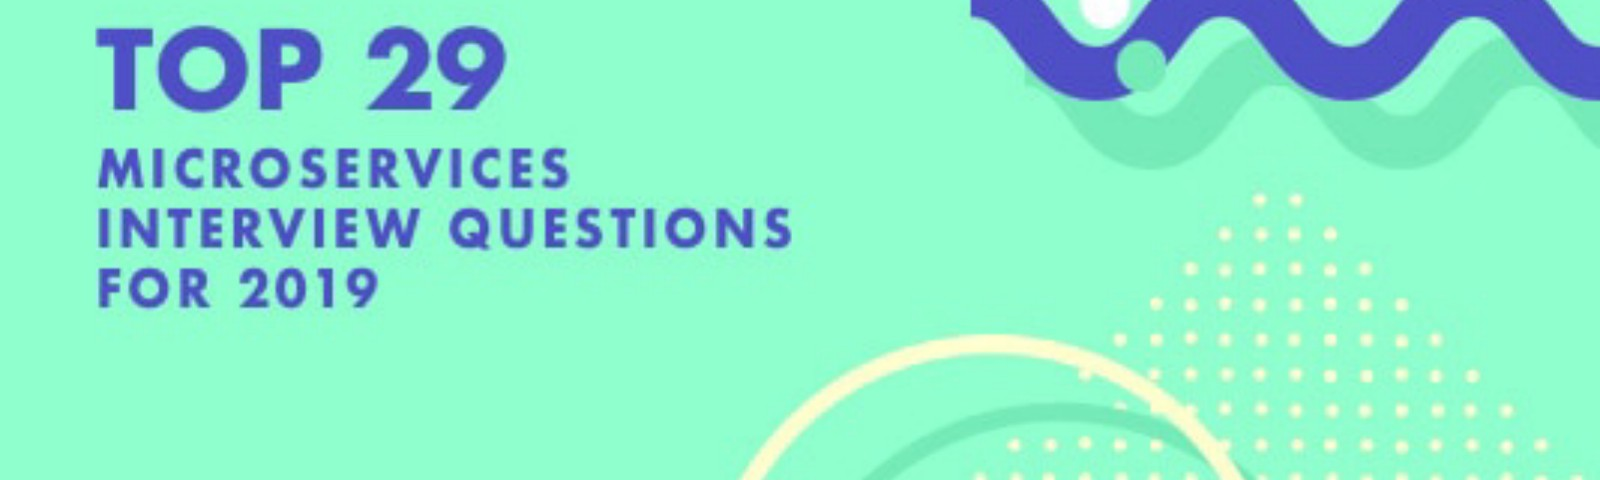 29 Microservices Interview Questions For 2020